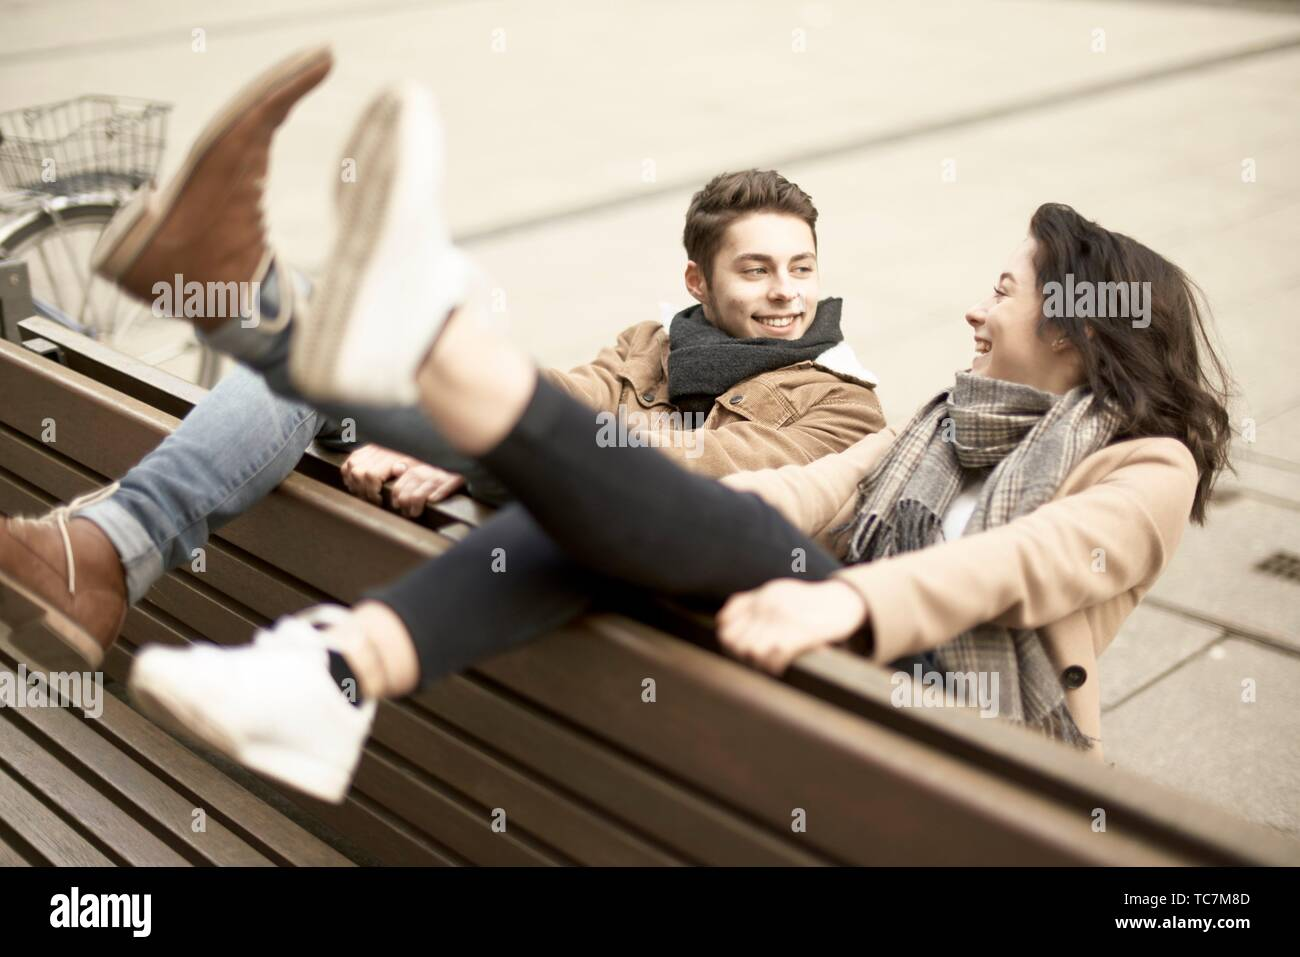 young smiling teenage couple sitting on bench the wrong way round in city, hanging out together, legs up, upside down, in Cottbus, Brandenburg, Stock Photo